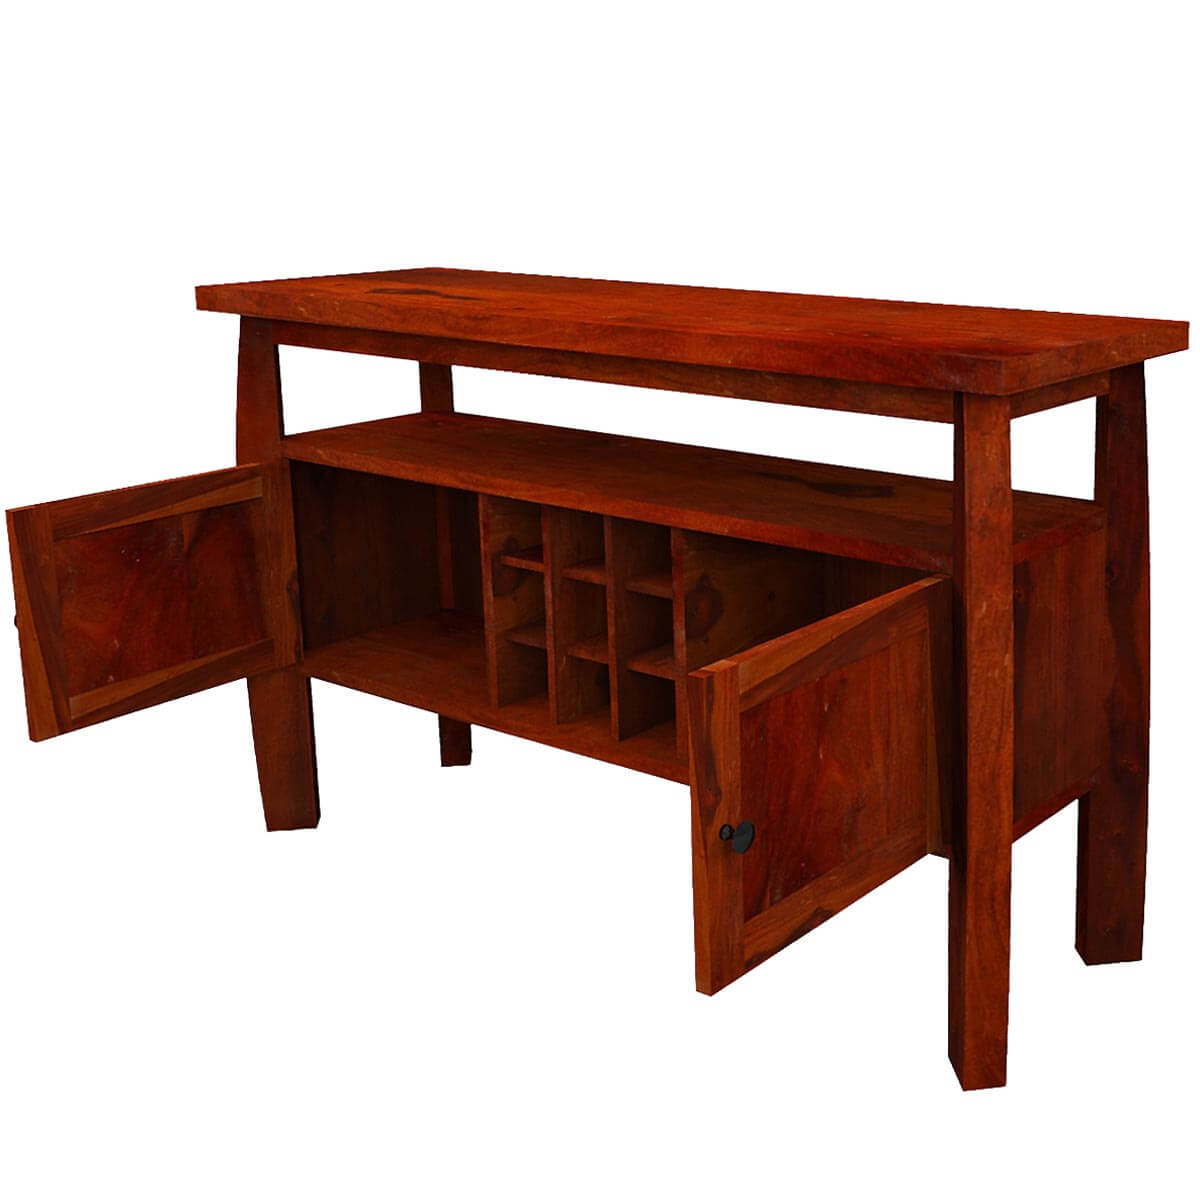 Contemporary Solid Wood Standing Wine Bar Rustic Buffet Table Intended For Contemporary Wine Bar Buffets (View 12 of 30)